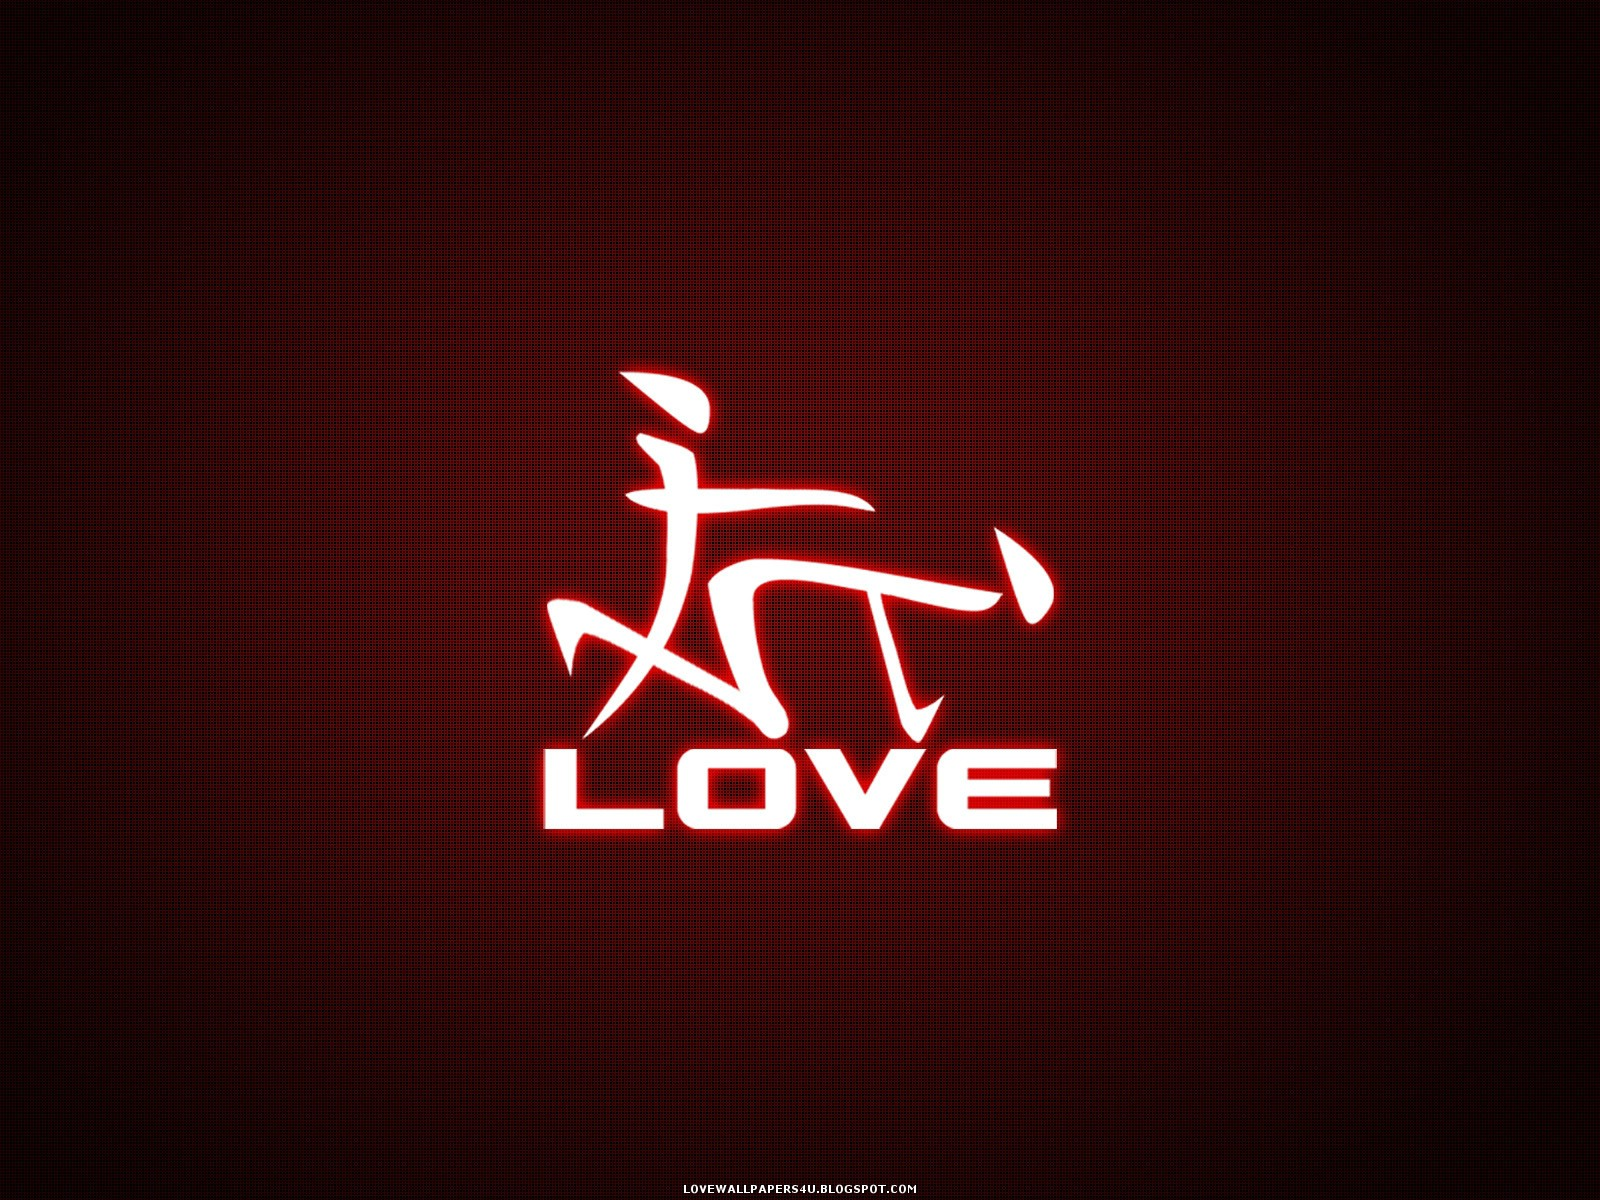 Love sign love wallpapers romantic wallpapers stock for Love sign